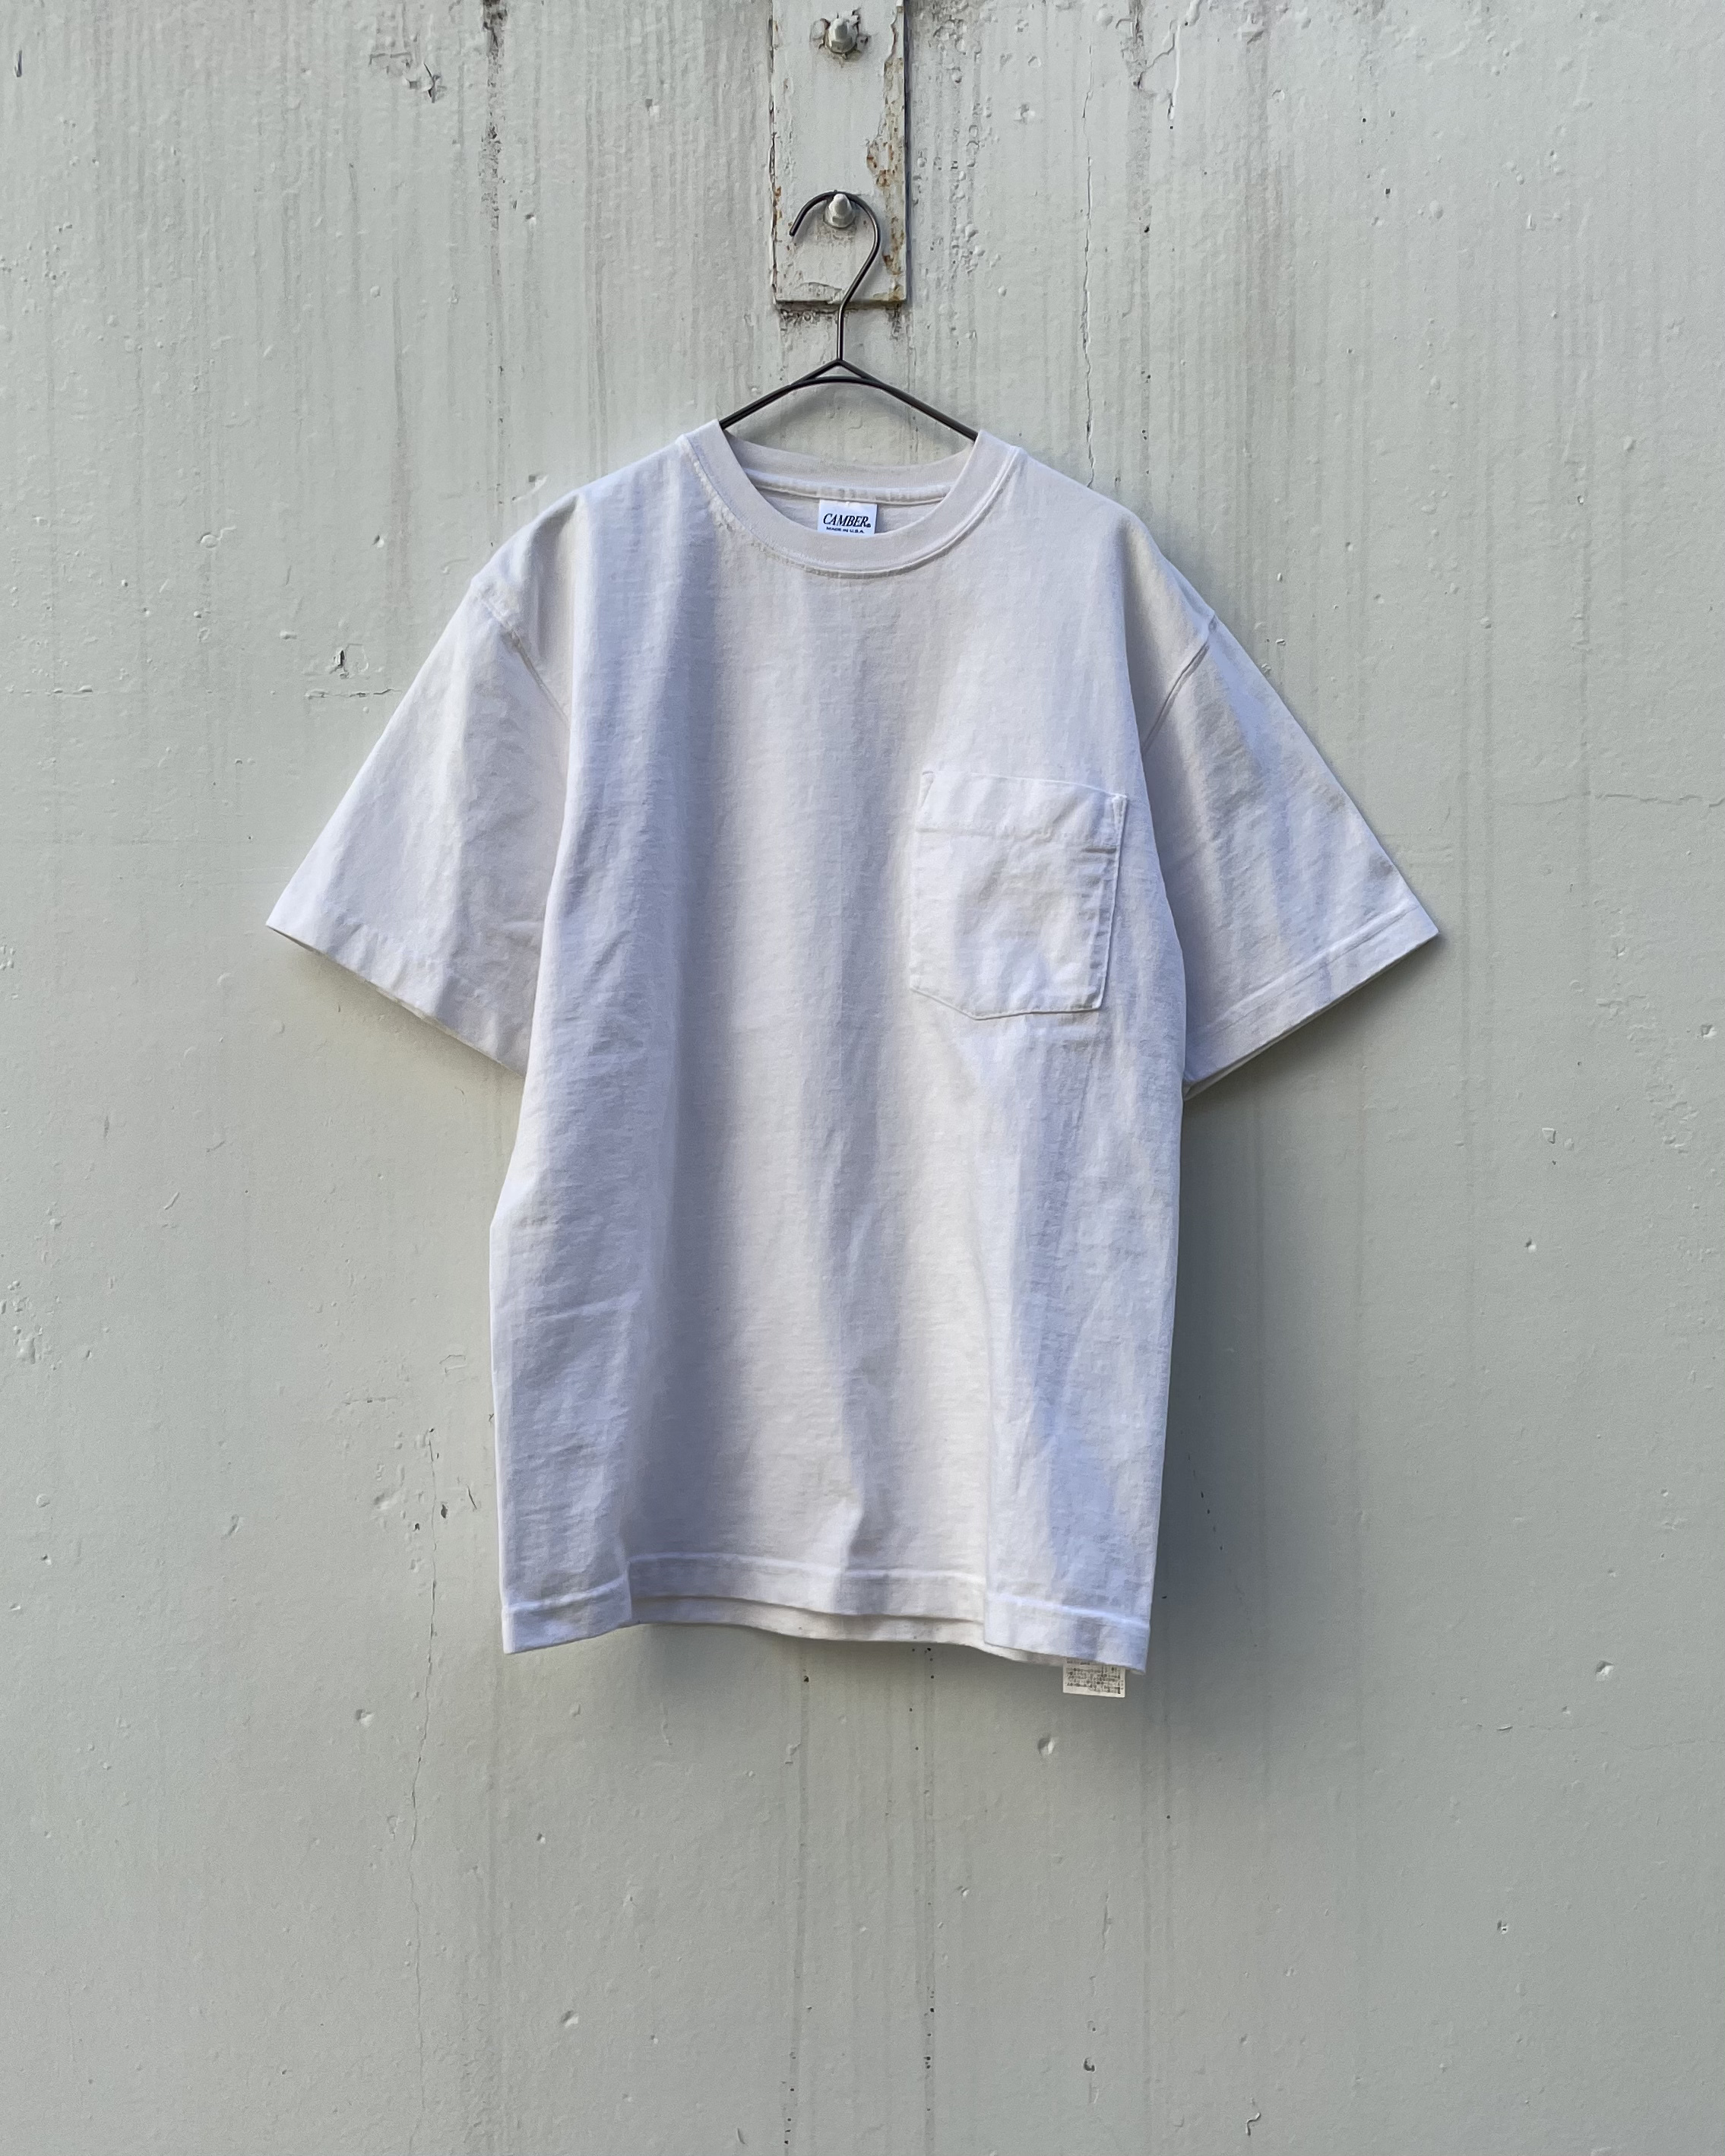 (CS426)CAMBER heavy weight pocket T-shirt made in USA